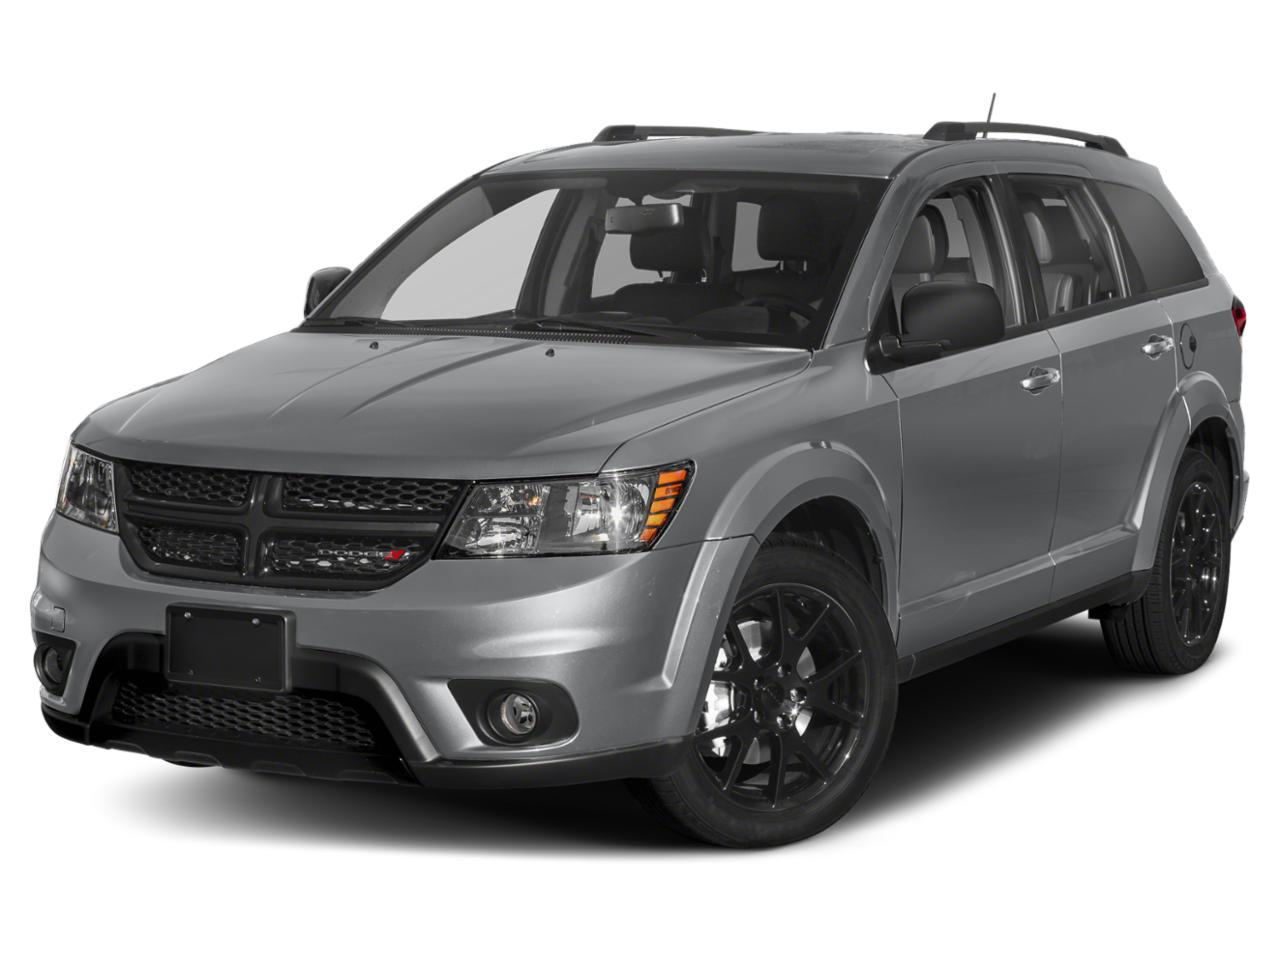 2019 Dodge Journey Vehicle Photo in Spokane, WA 99207